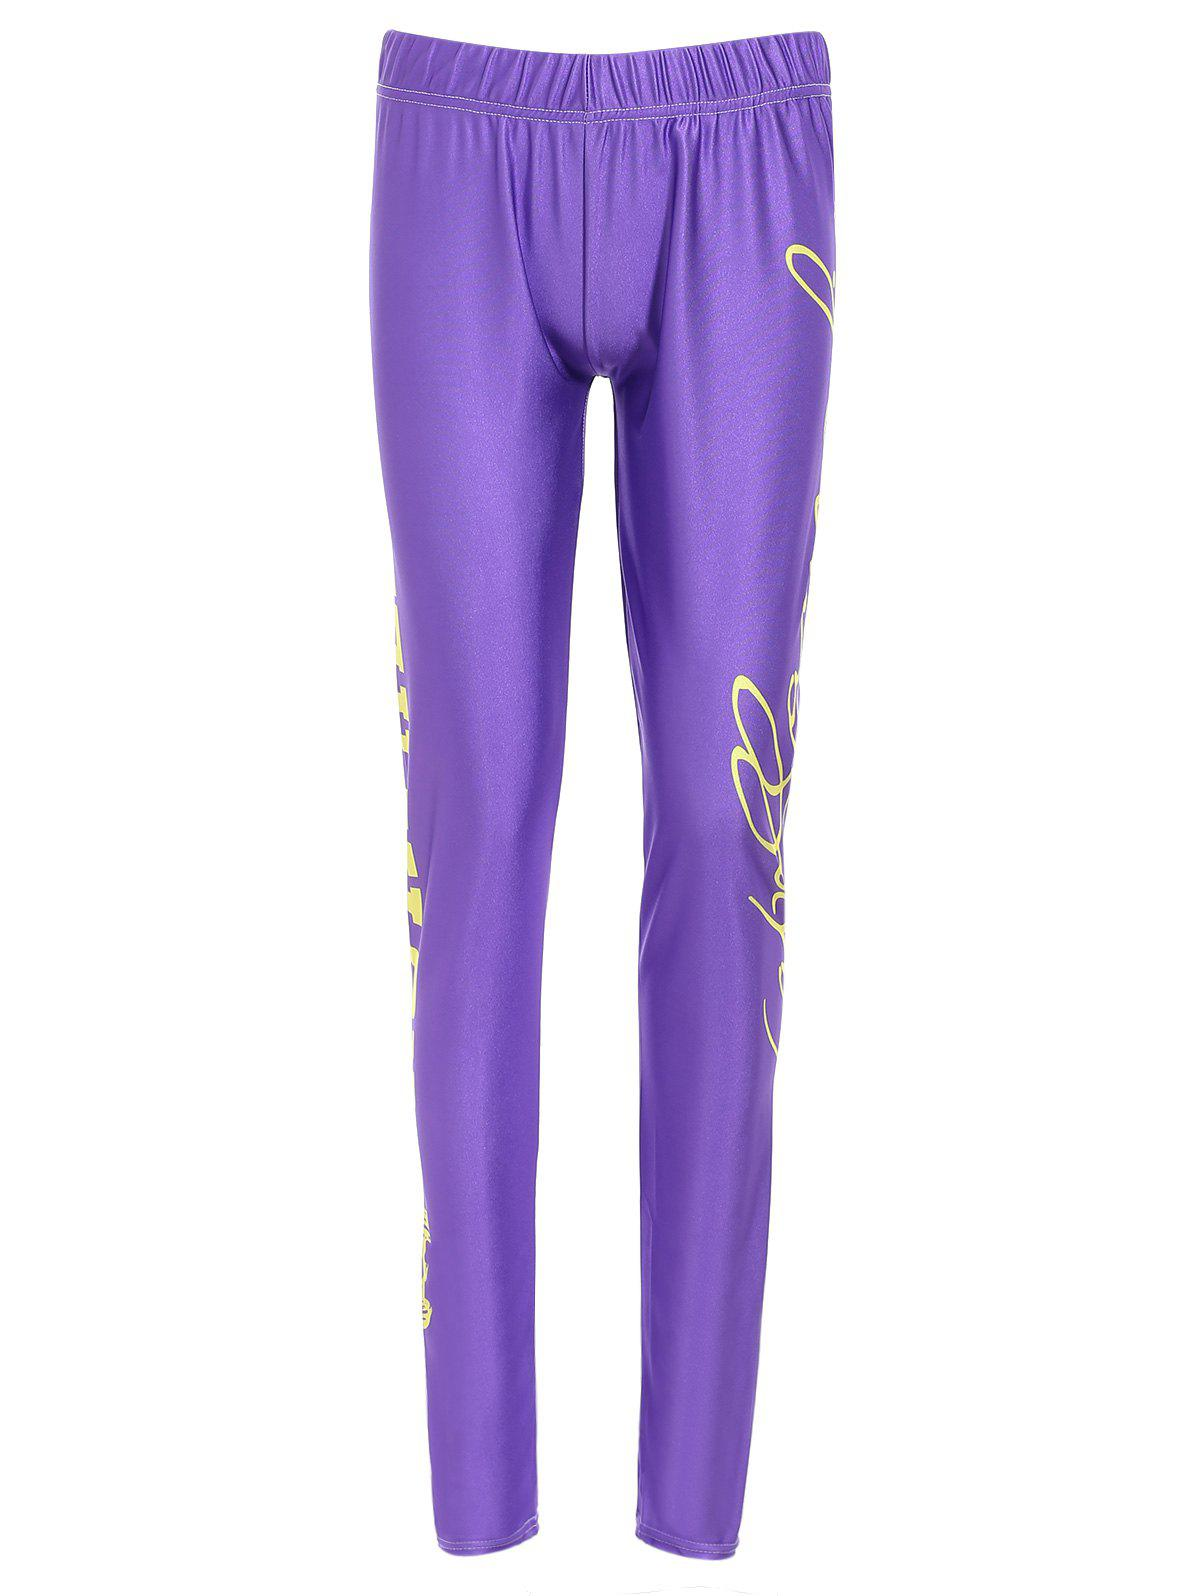 Sports Elastic Waist High-Waisted Bodycon Letter Print Women's Leggings - PURPLE M